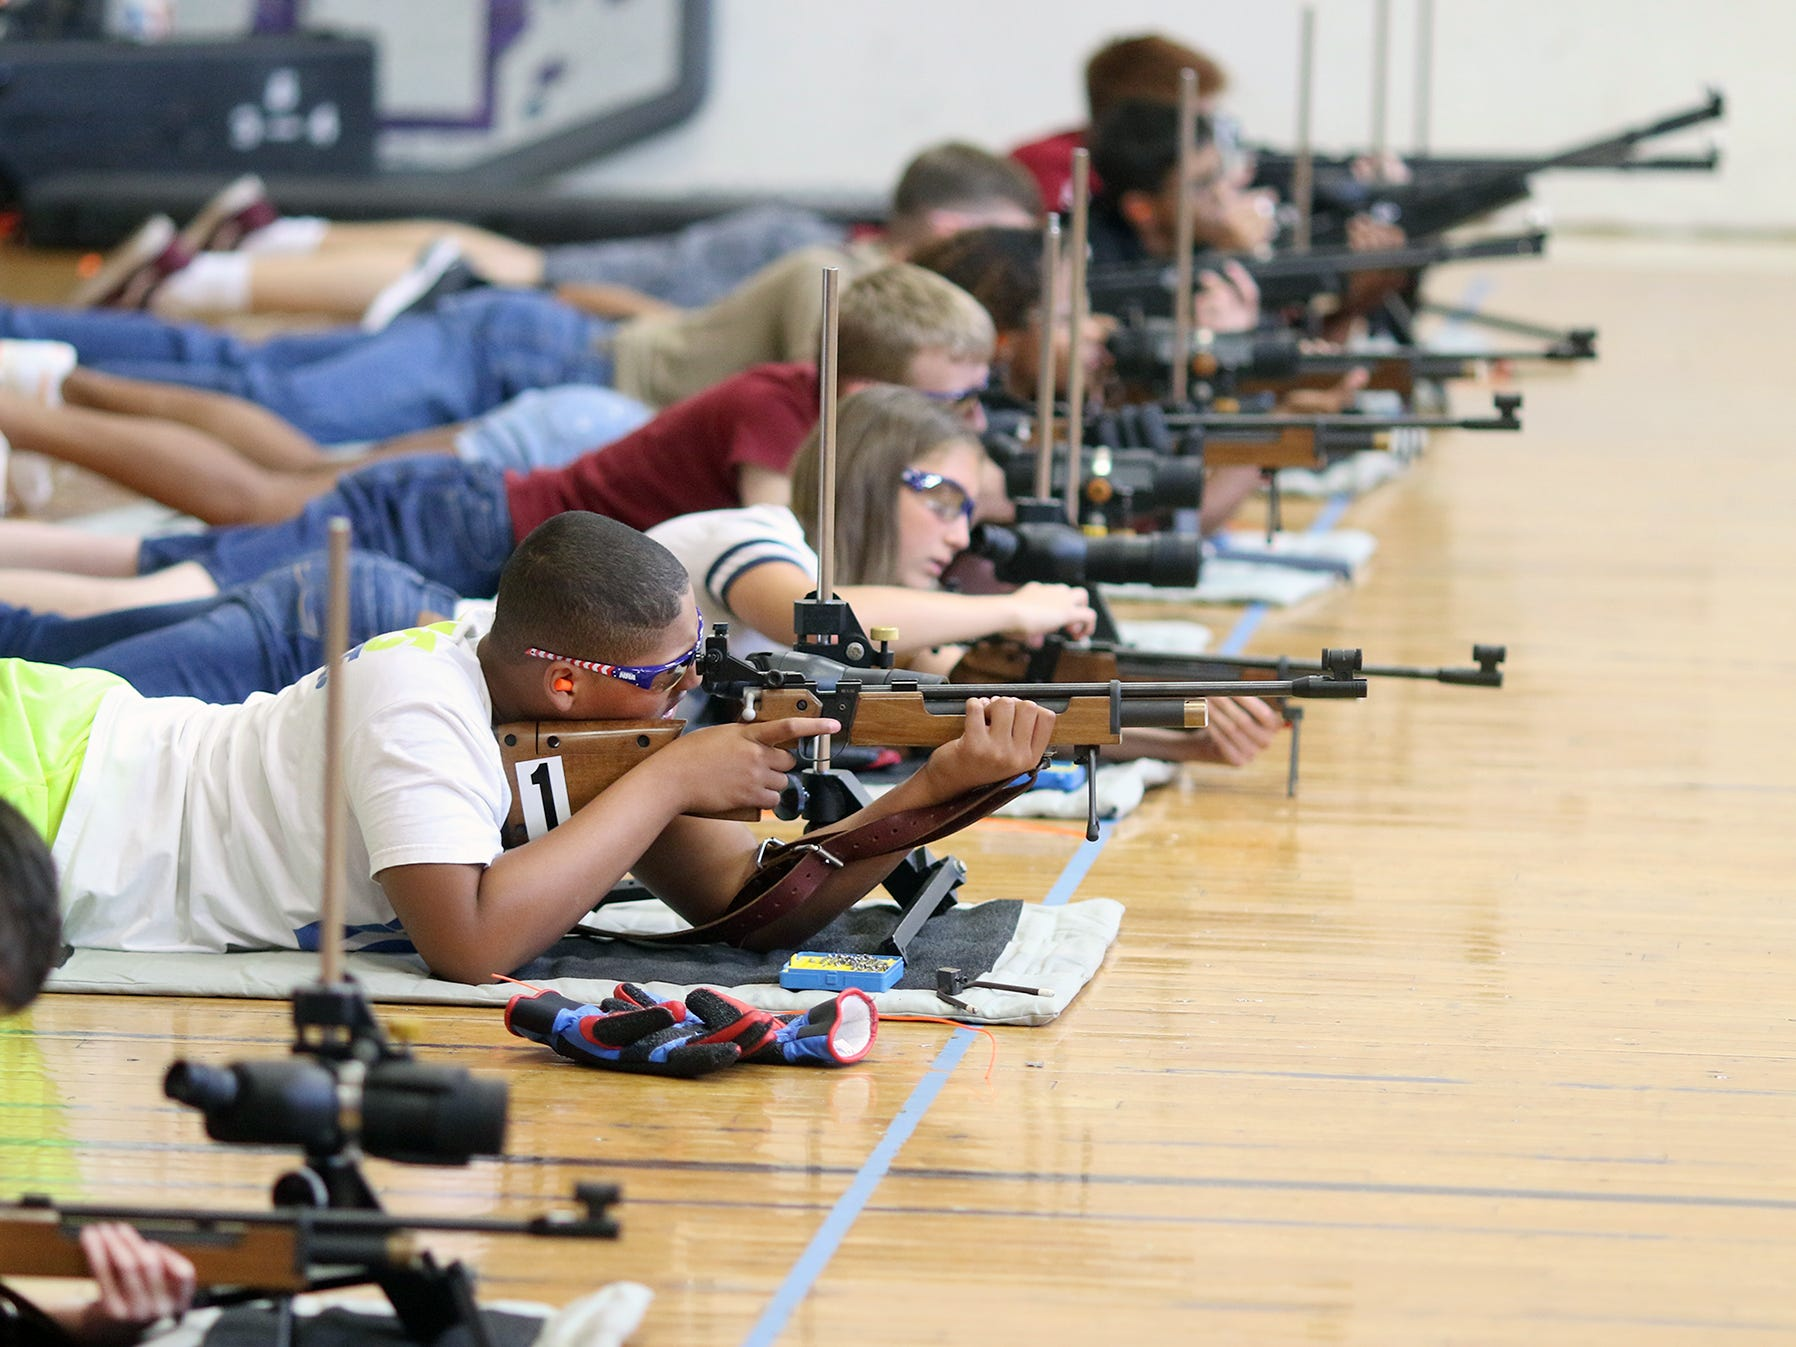 The South Kitsap High School NJROTC Wolf Battalion Rifle Camp runs from August 8-10, at the National Guard Armory in Port Orchard. The camp provides air rifle training the safe usage by expert instructor Jeff Phillips.